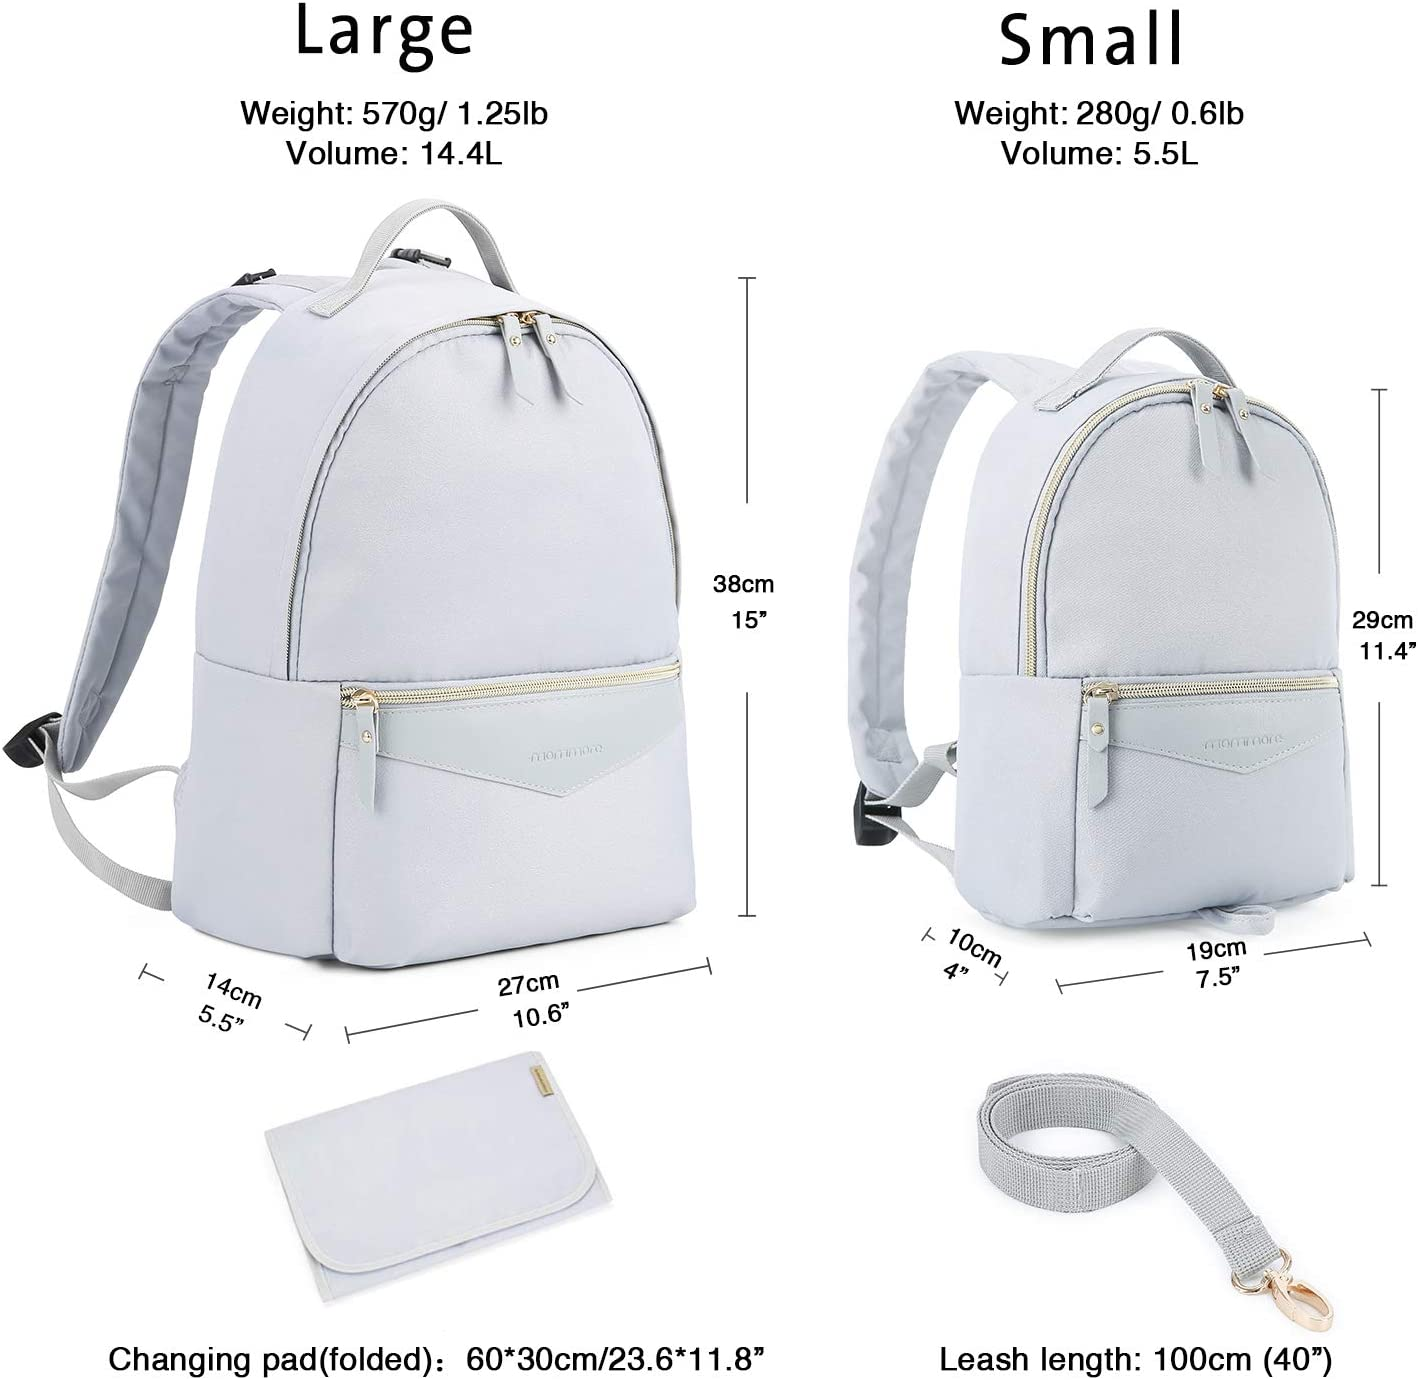 2 Piece Set mommore Changing Bag Backpack with Small Toddler Leash Backpack for Mother-Daughter Matching Look Grey